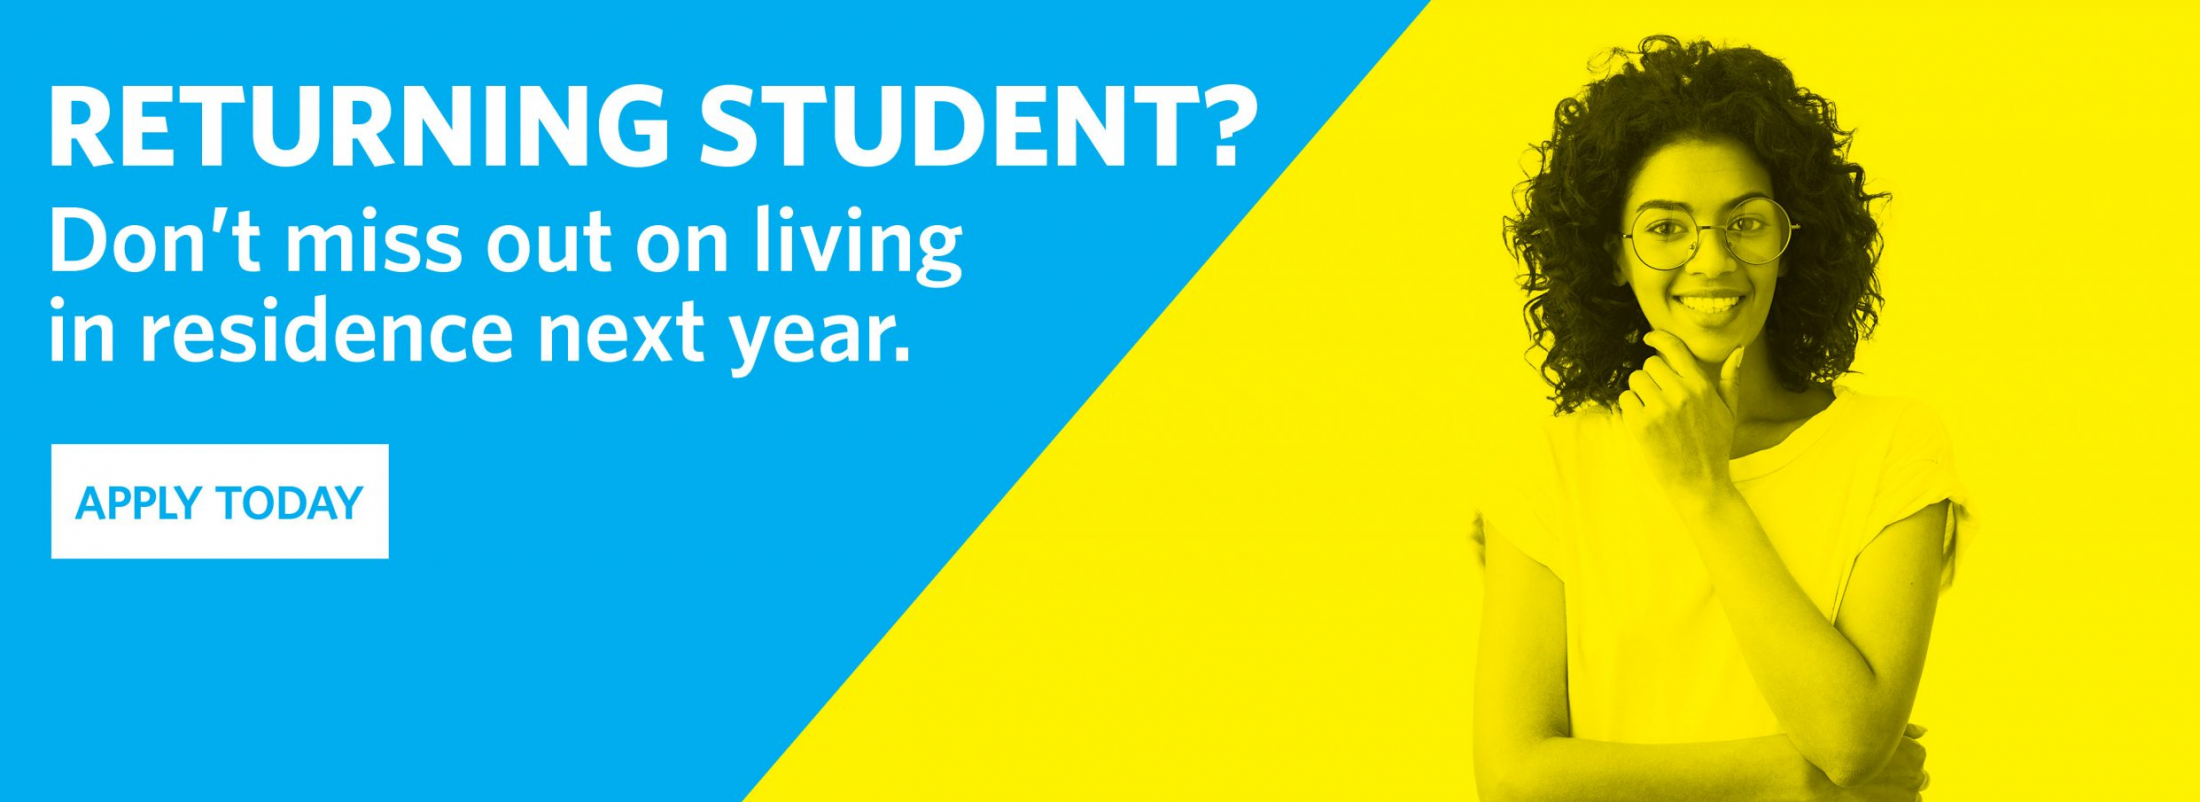 """Graphic with young woman that reads """"Returning student? Don't miss out on living in residence next year. Apply today."""""""